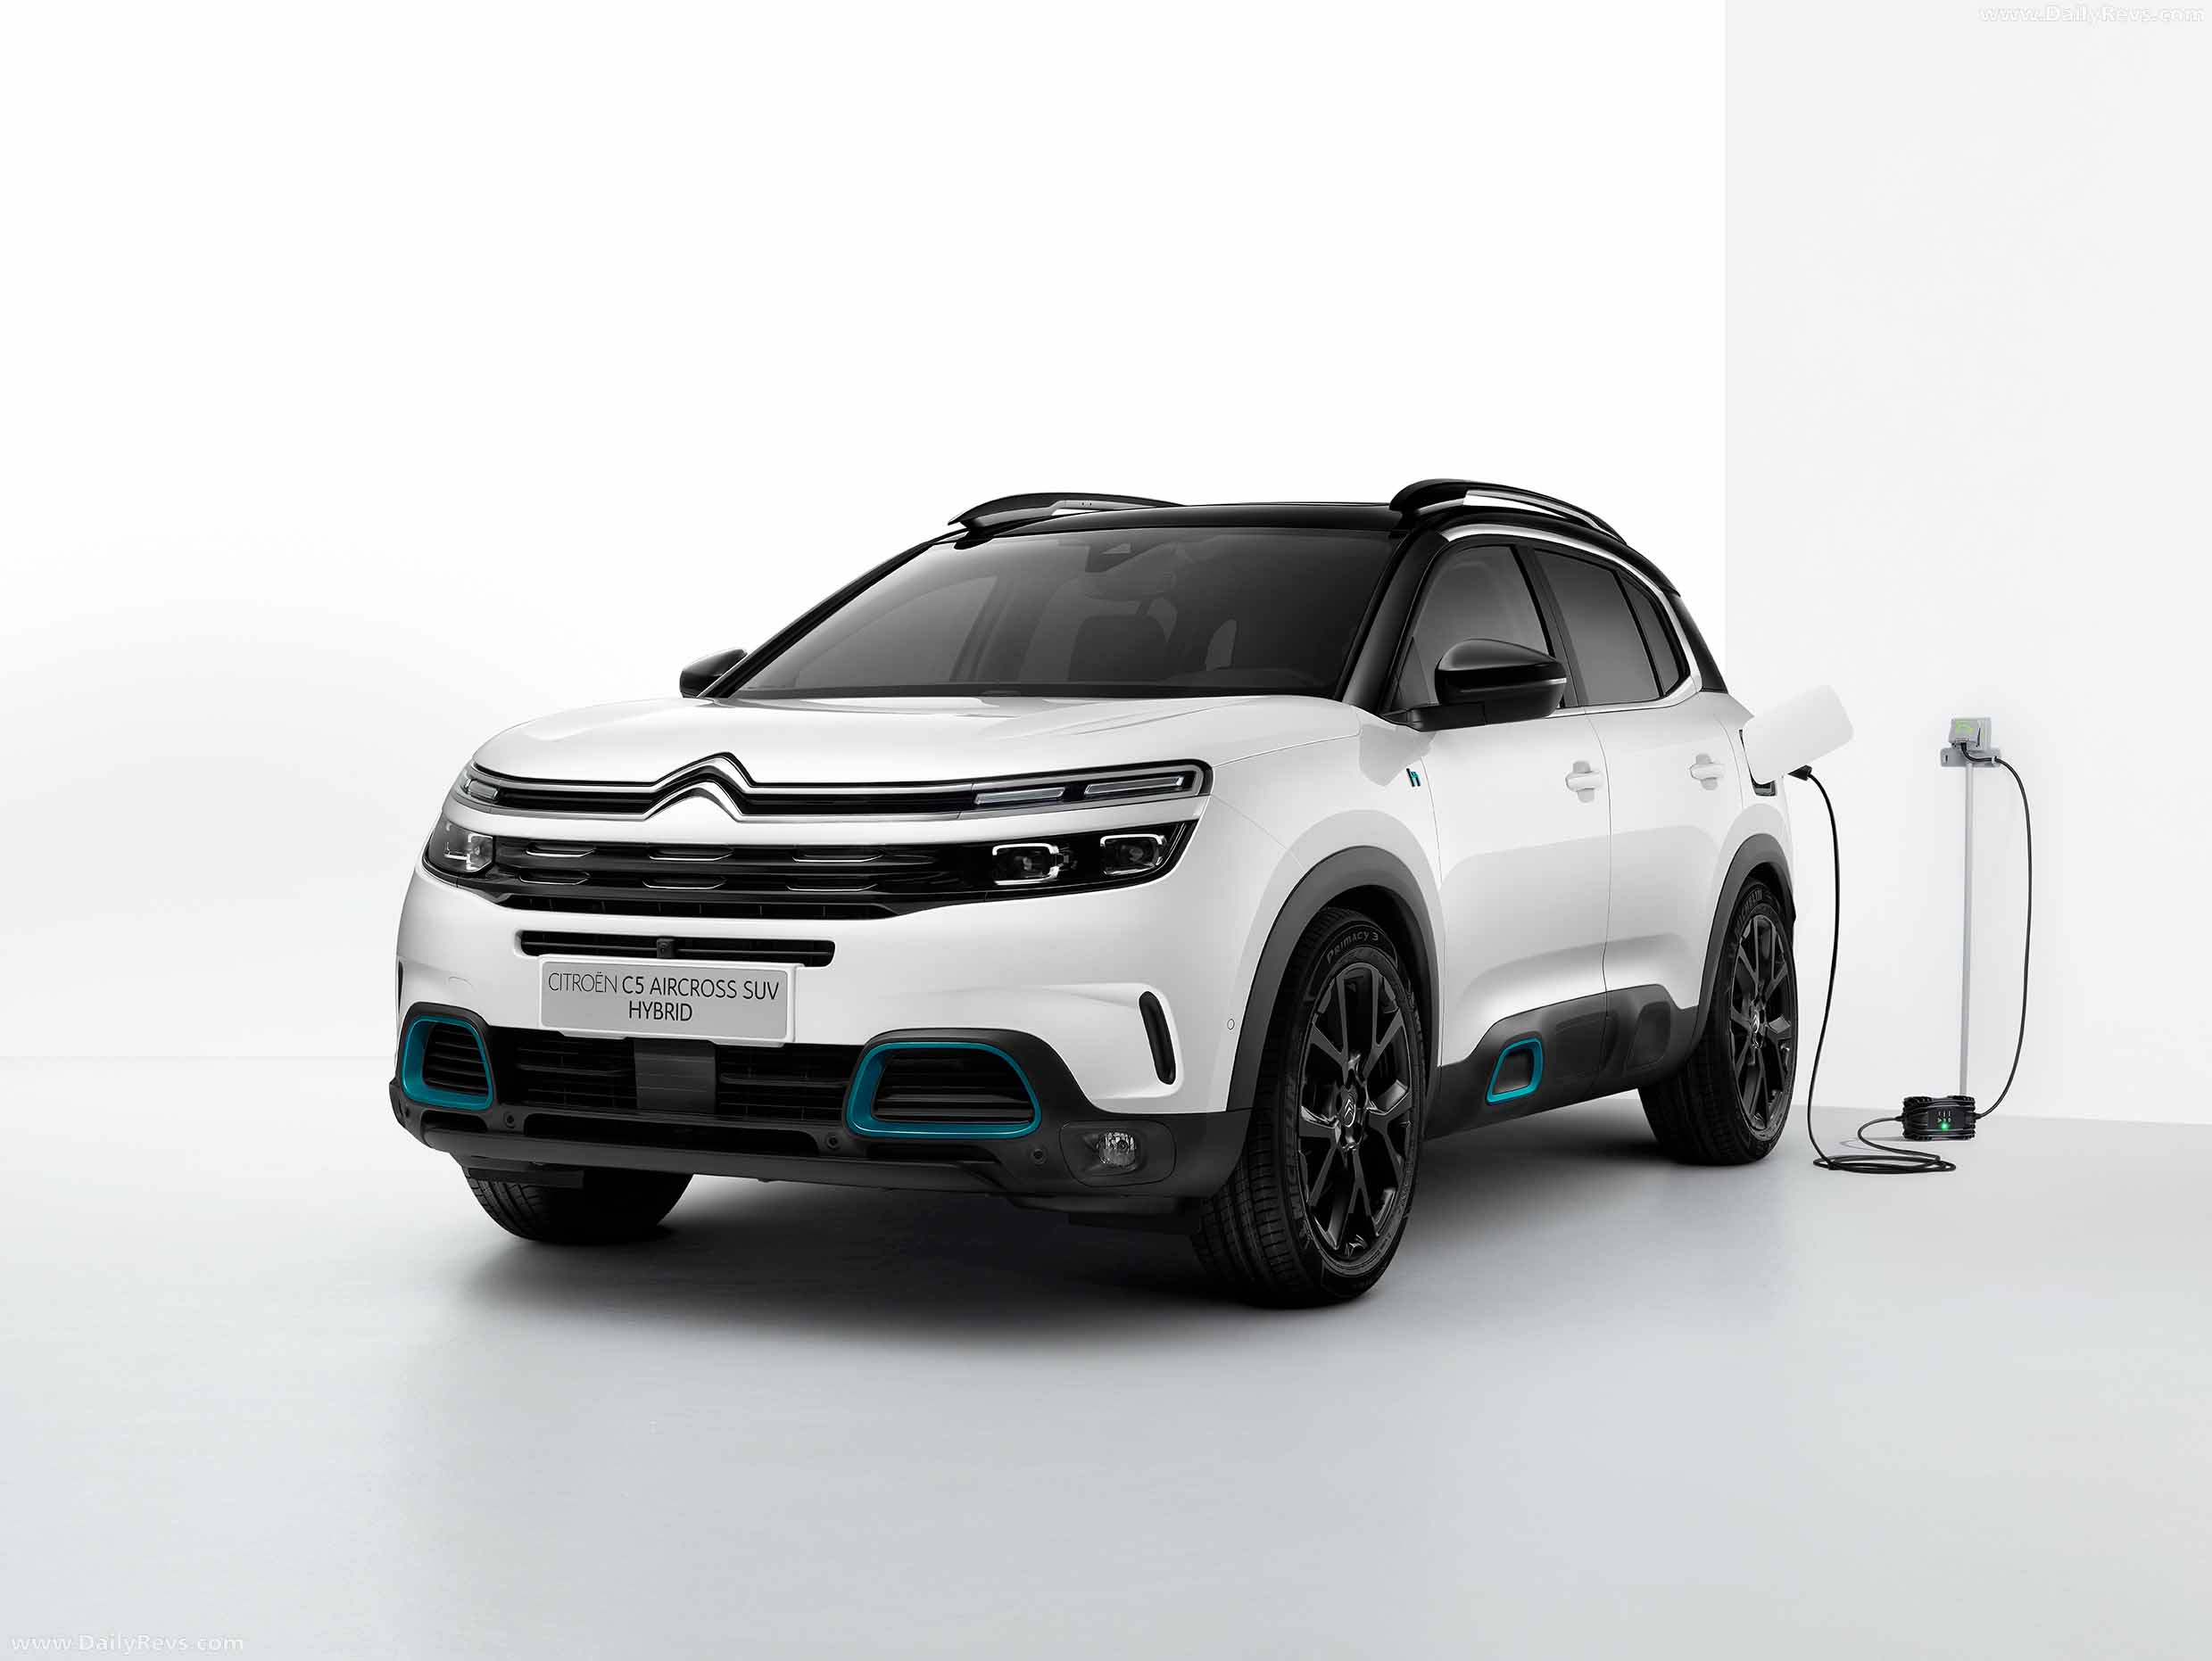 2020 Citroen C5 Aircross SUV Hybrid - HD Pictures, Spec ...